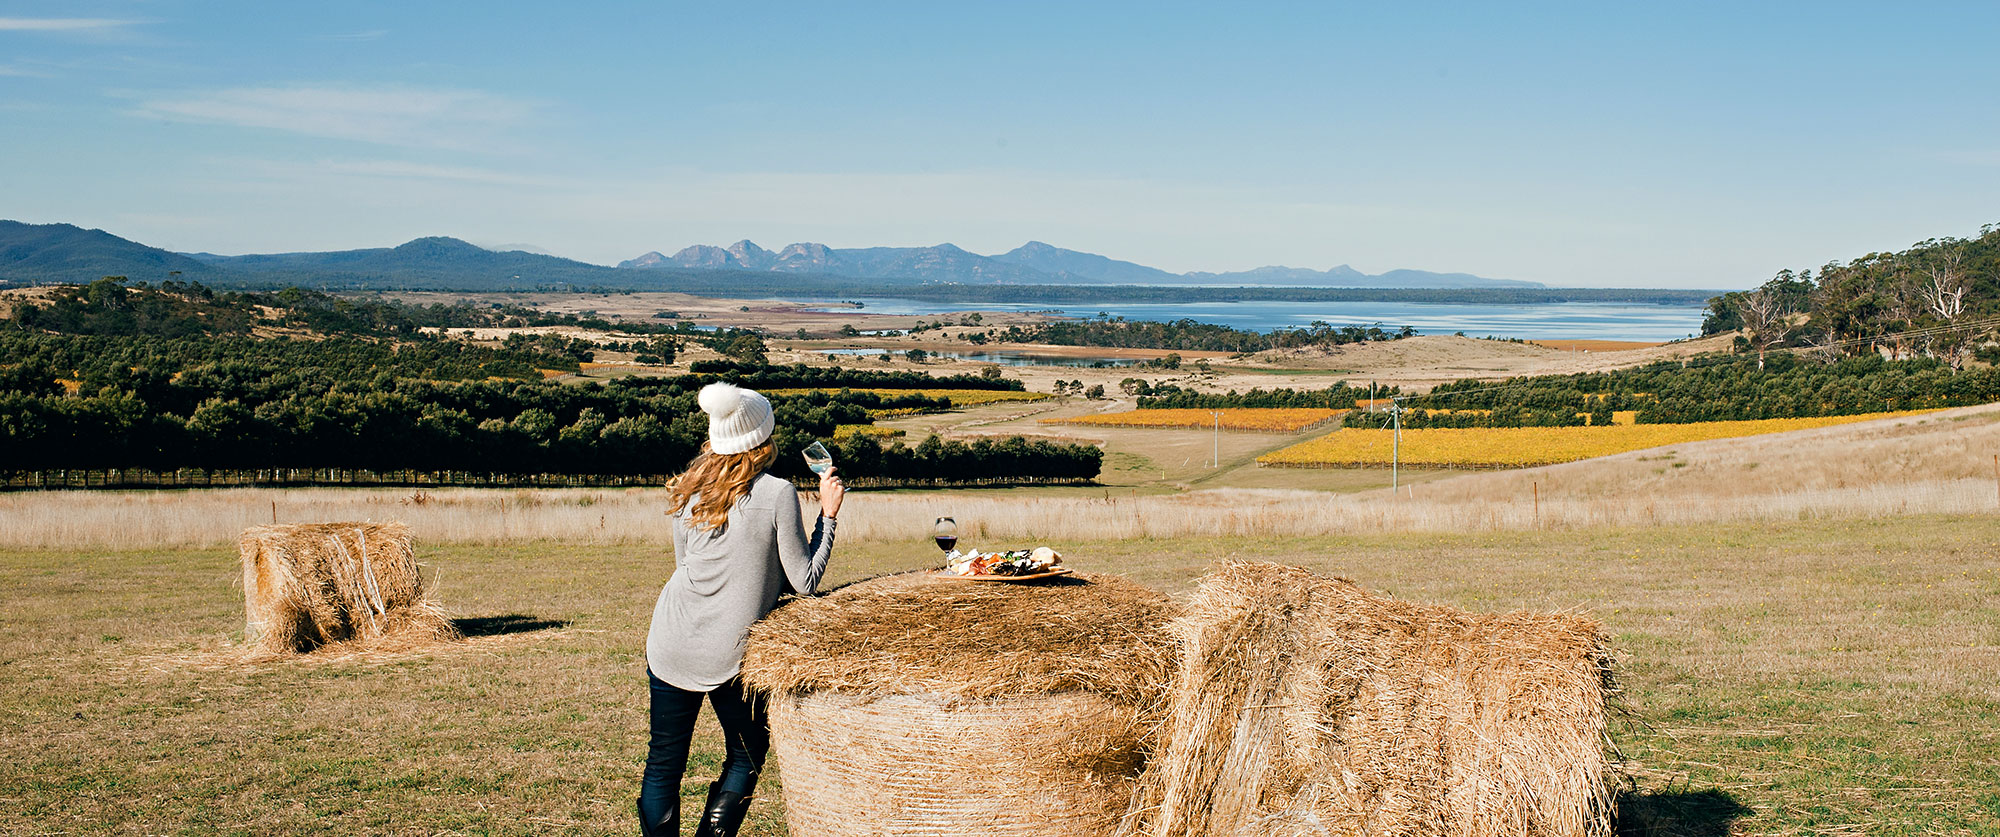 Honeymoon in Australia: Tasmania Outdoor Encounters - Tasmania Cellar Door Wine Tastings